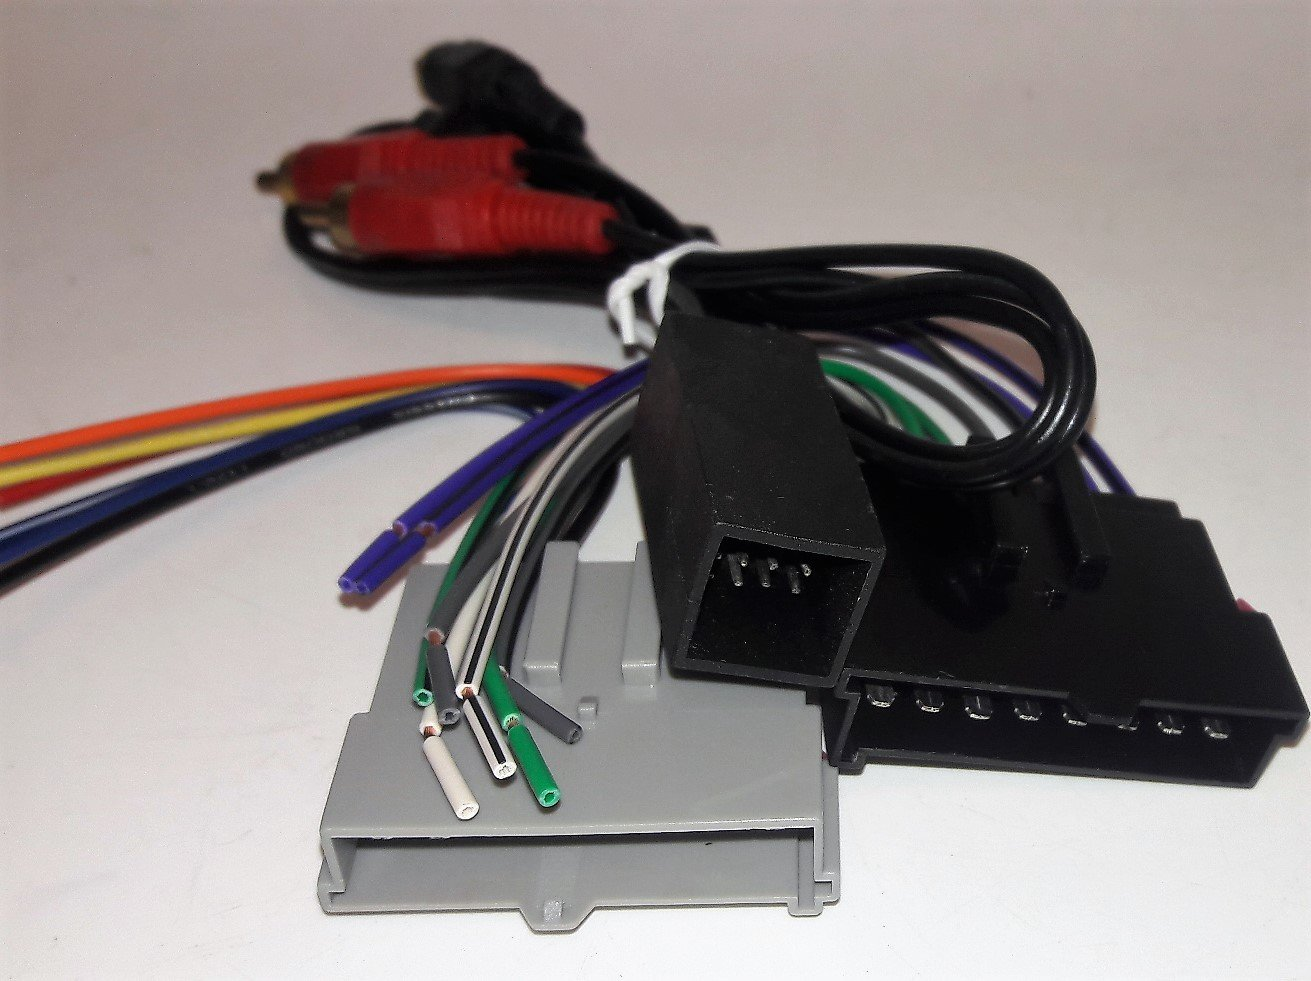 carxtc radio install wire harness for installing a new car radio into a ford explorer (1991 1994) Auto Wiring Harness Kits